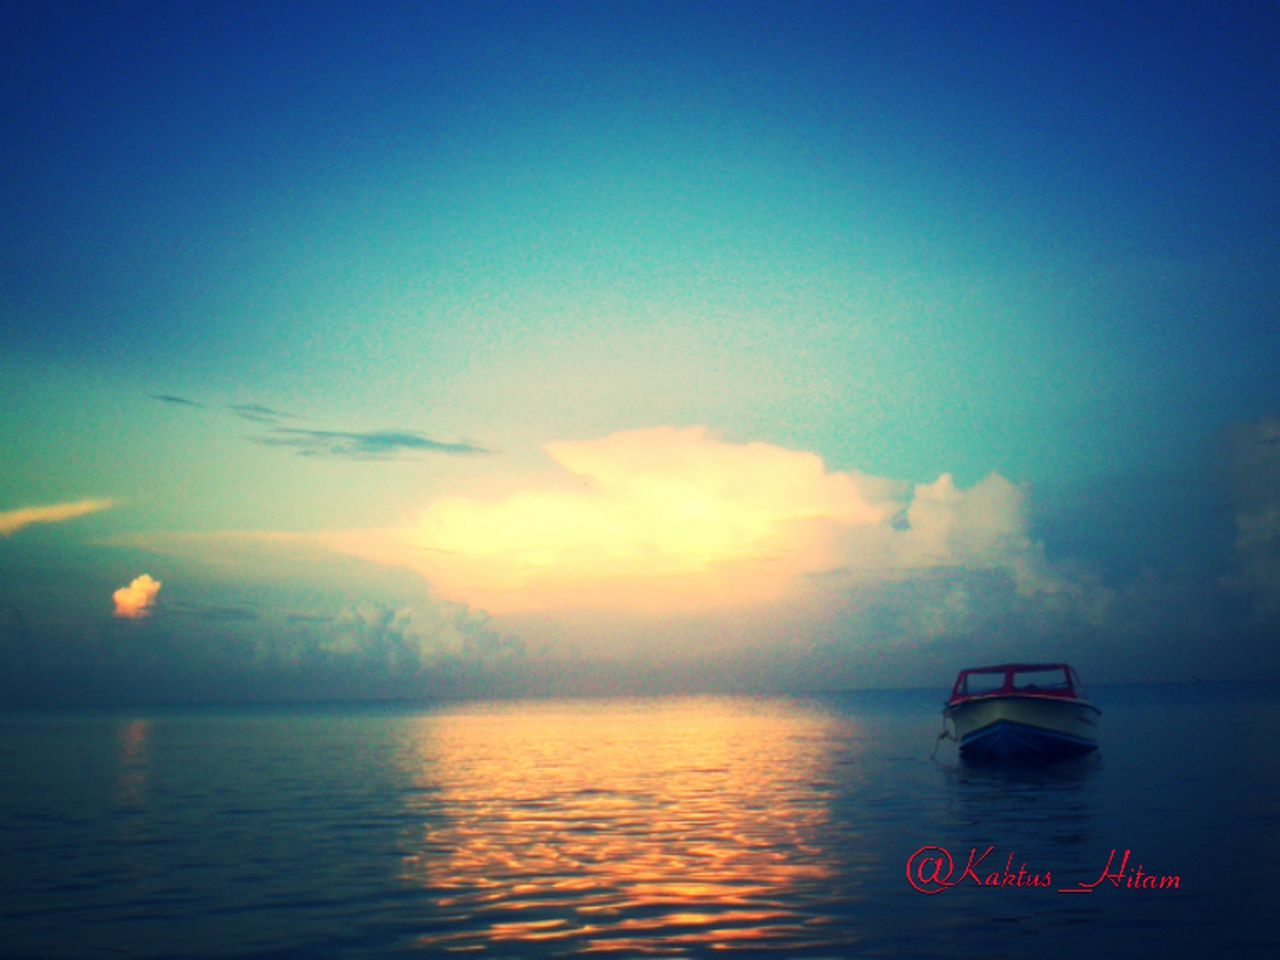 sky, sea, scenics, cloud - sky, water, transportation, no people, nature, tranquility, beauty in nature, outdoors, nautical vessel, sunset, vacations, horizon over water, day